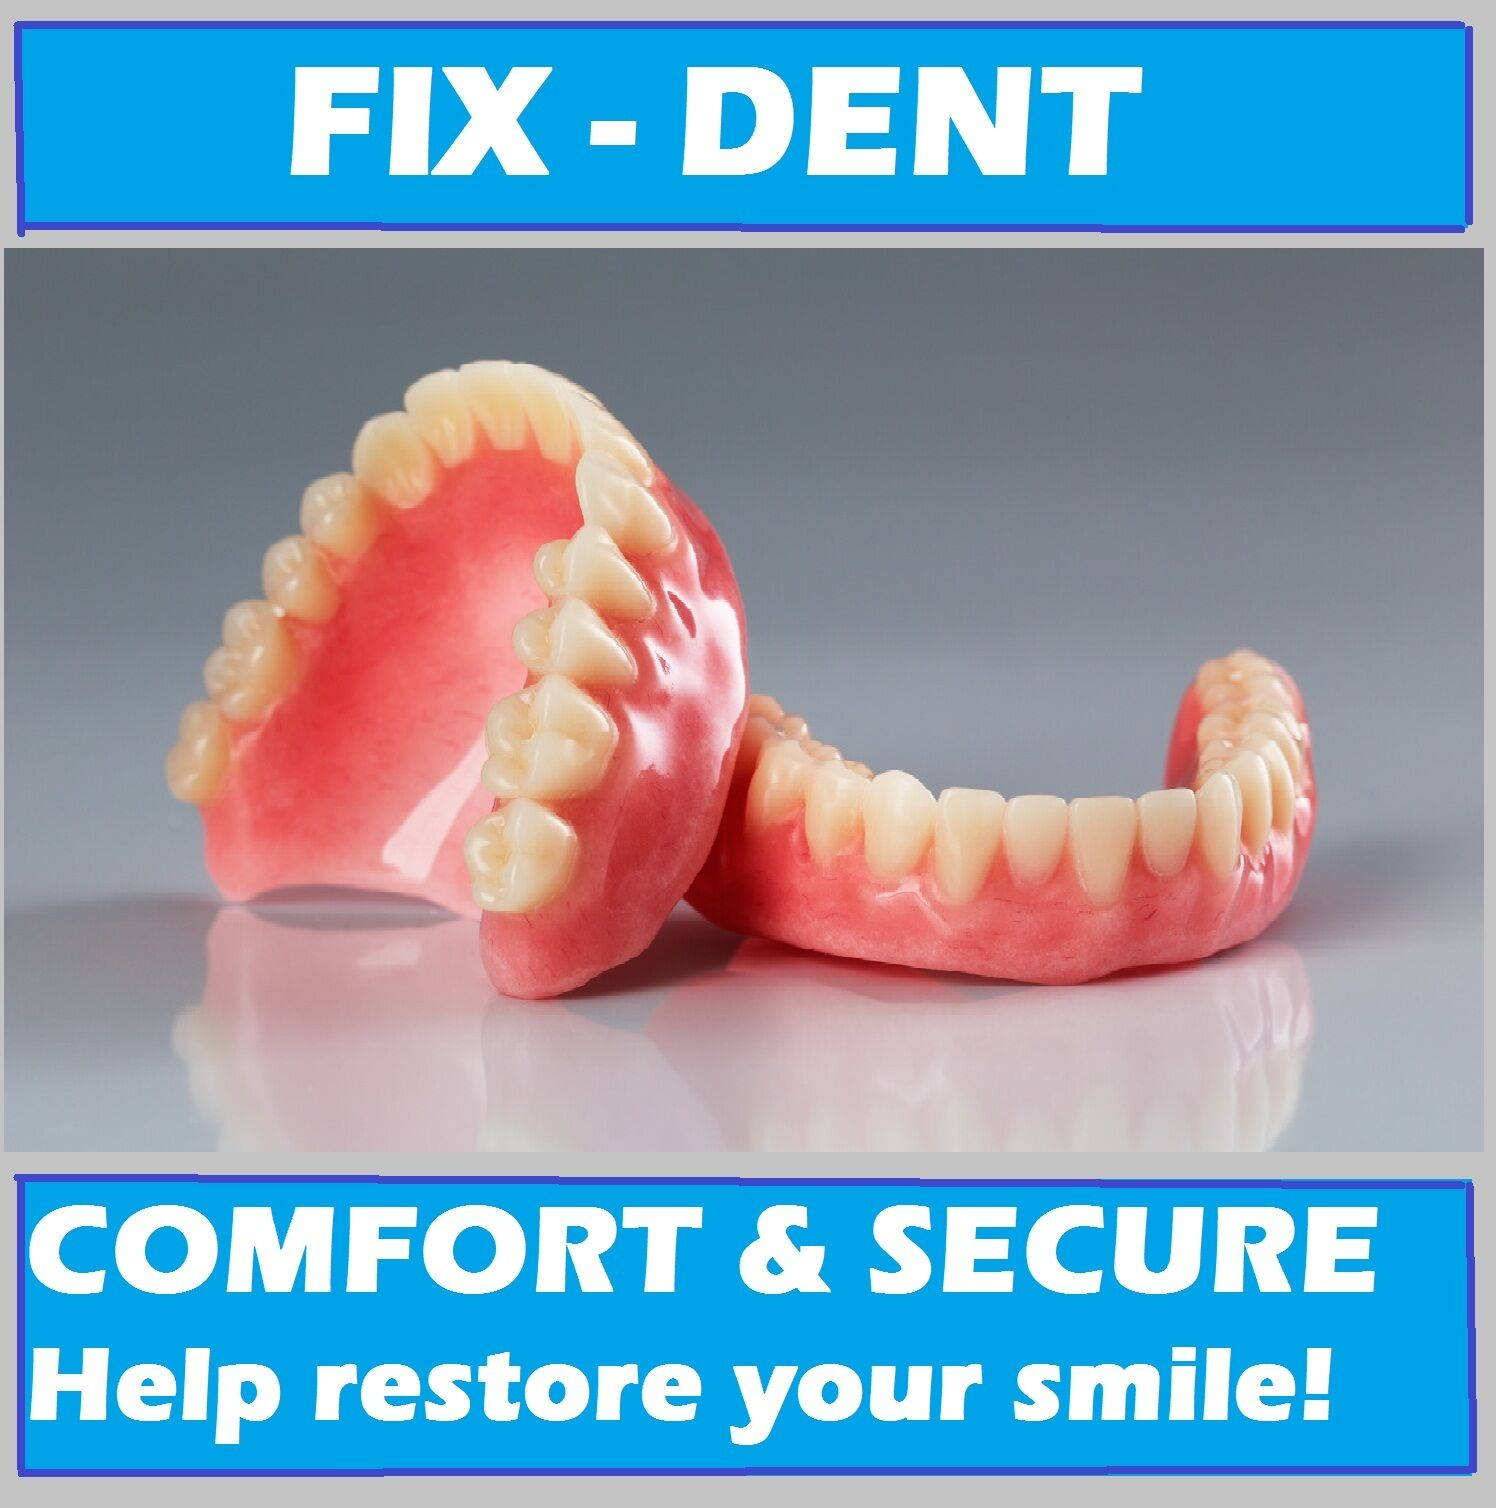 Fix dent professional soft denture reline 3 kits easy and safe ebay resntentobalflowflowcomponentncel solutioingenieria Image collections